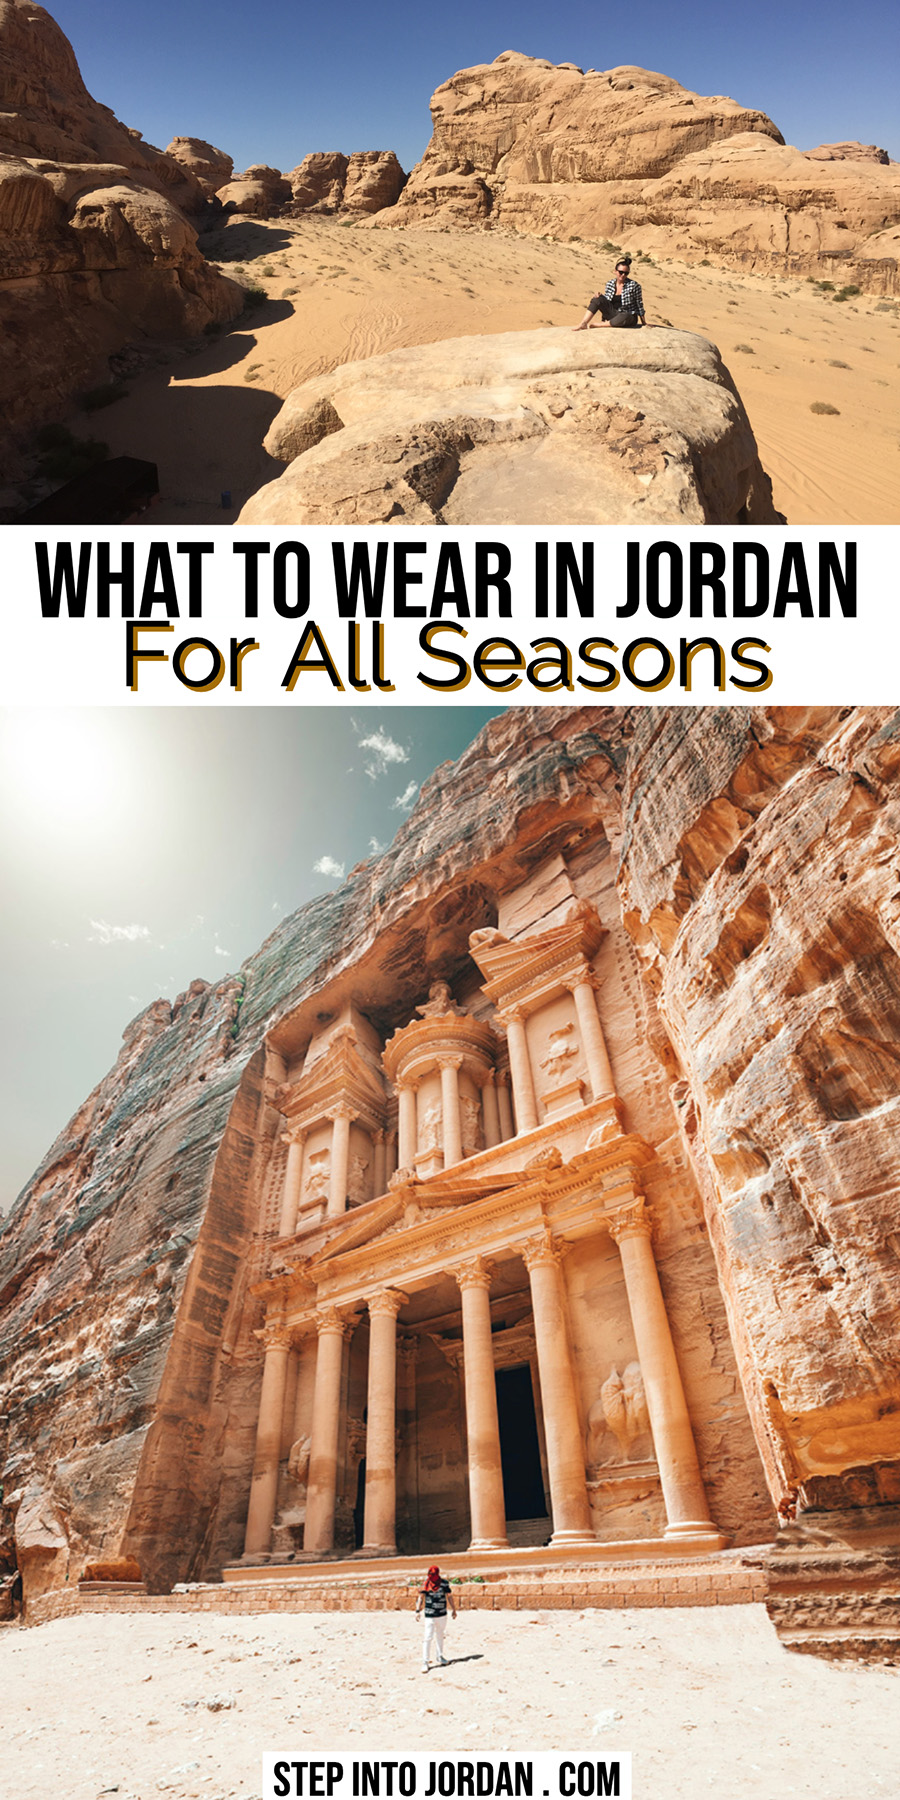 What to Wear in Jordan for All Seasons